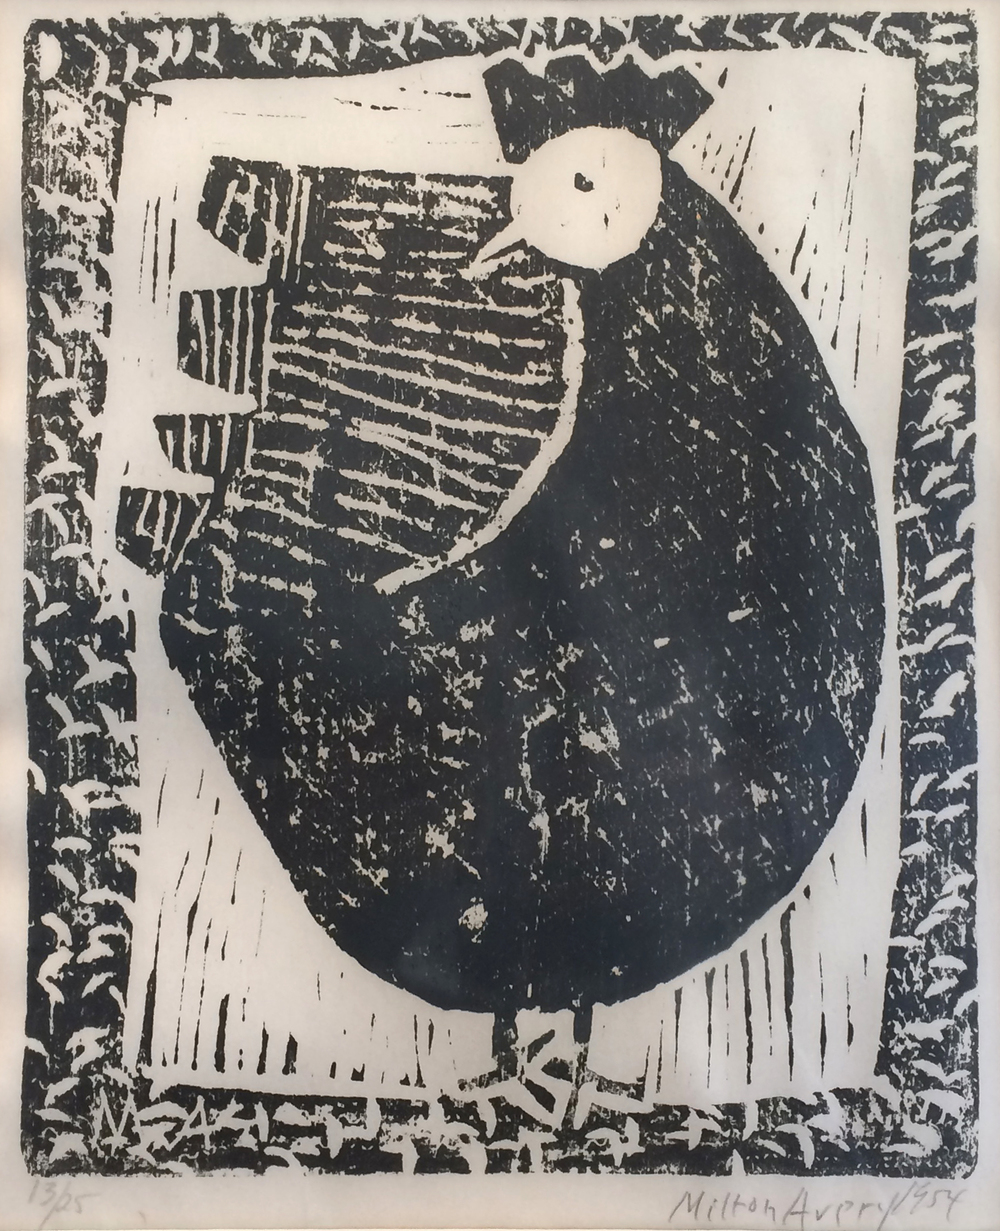 Milton Avery  Hen,  1954 woodcut, 12 x 9 3/4 inches 13/25